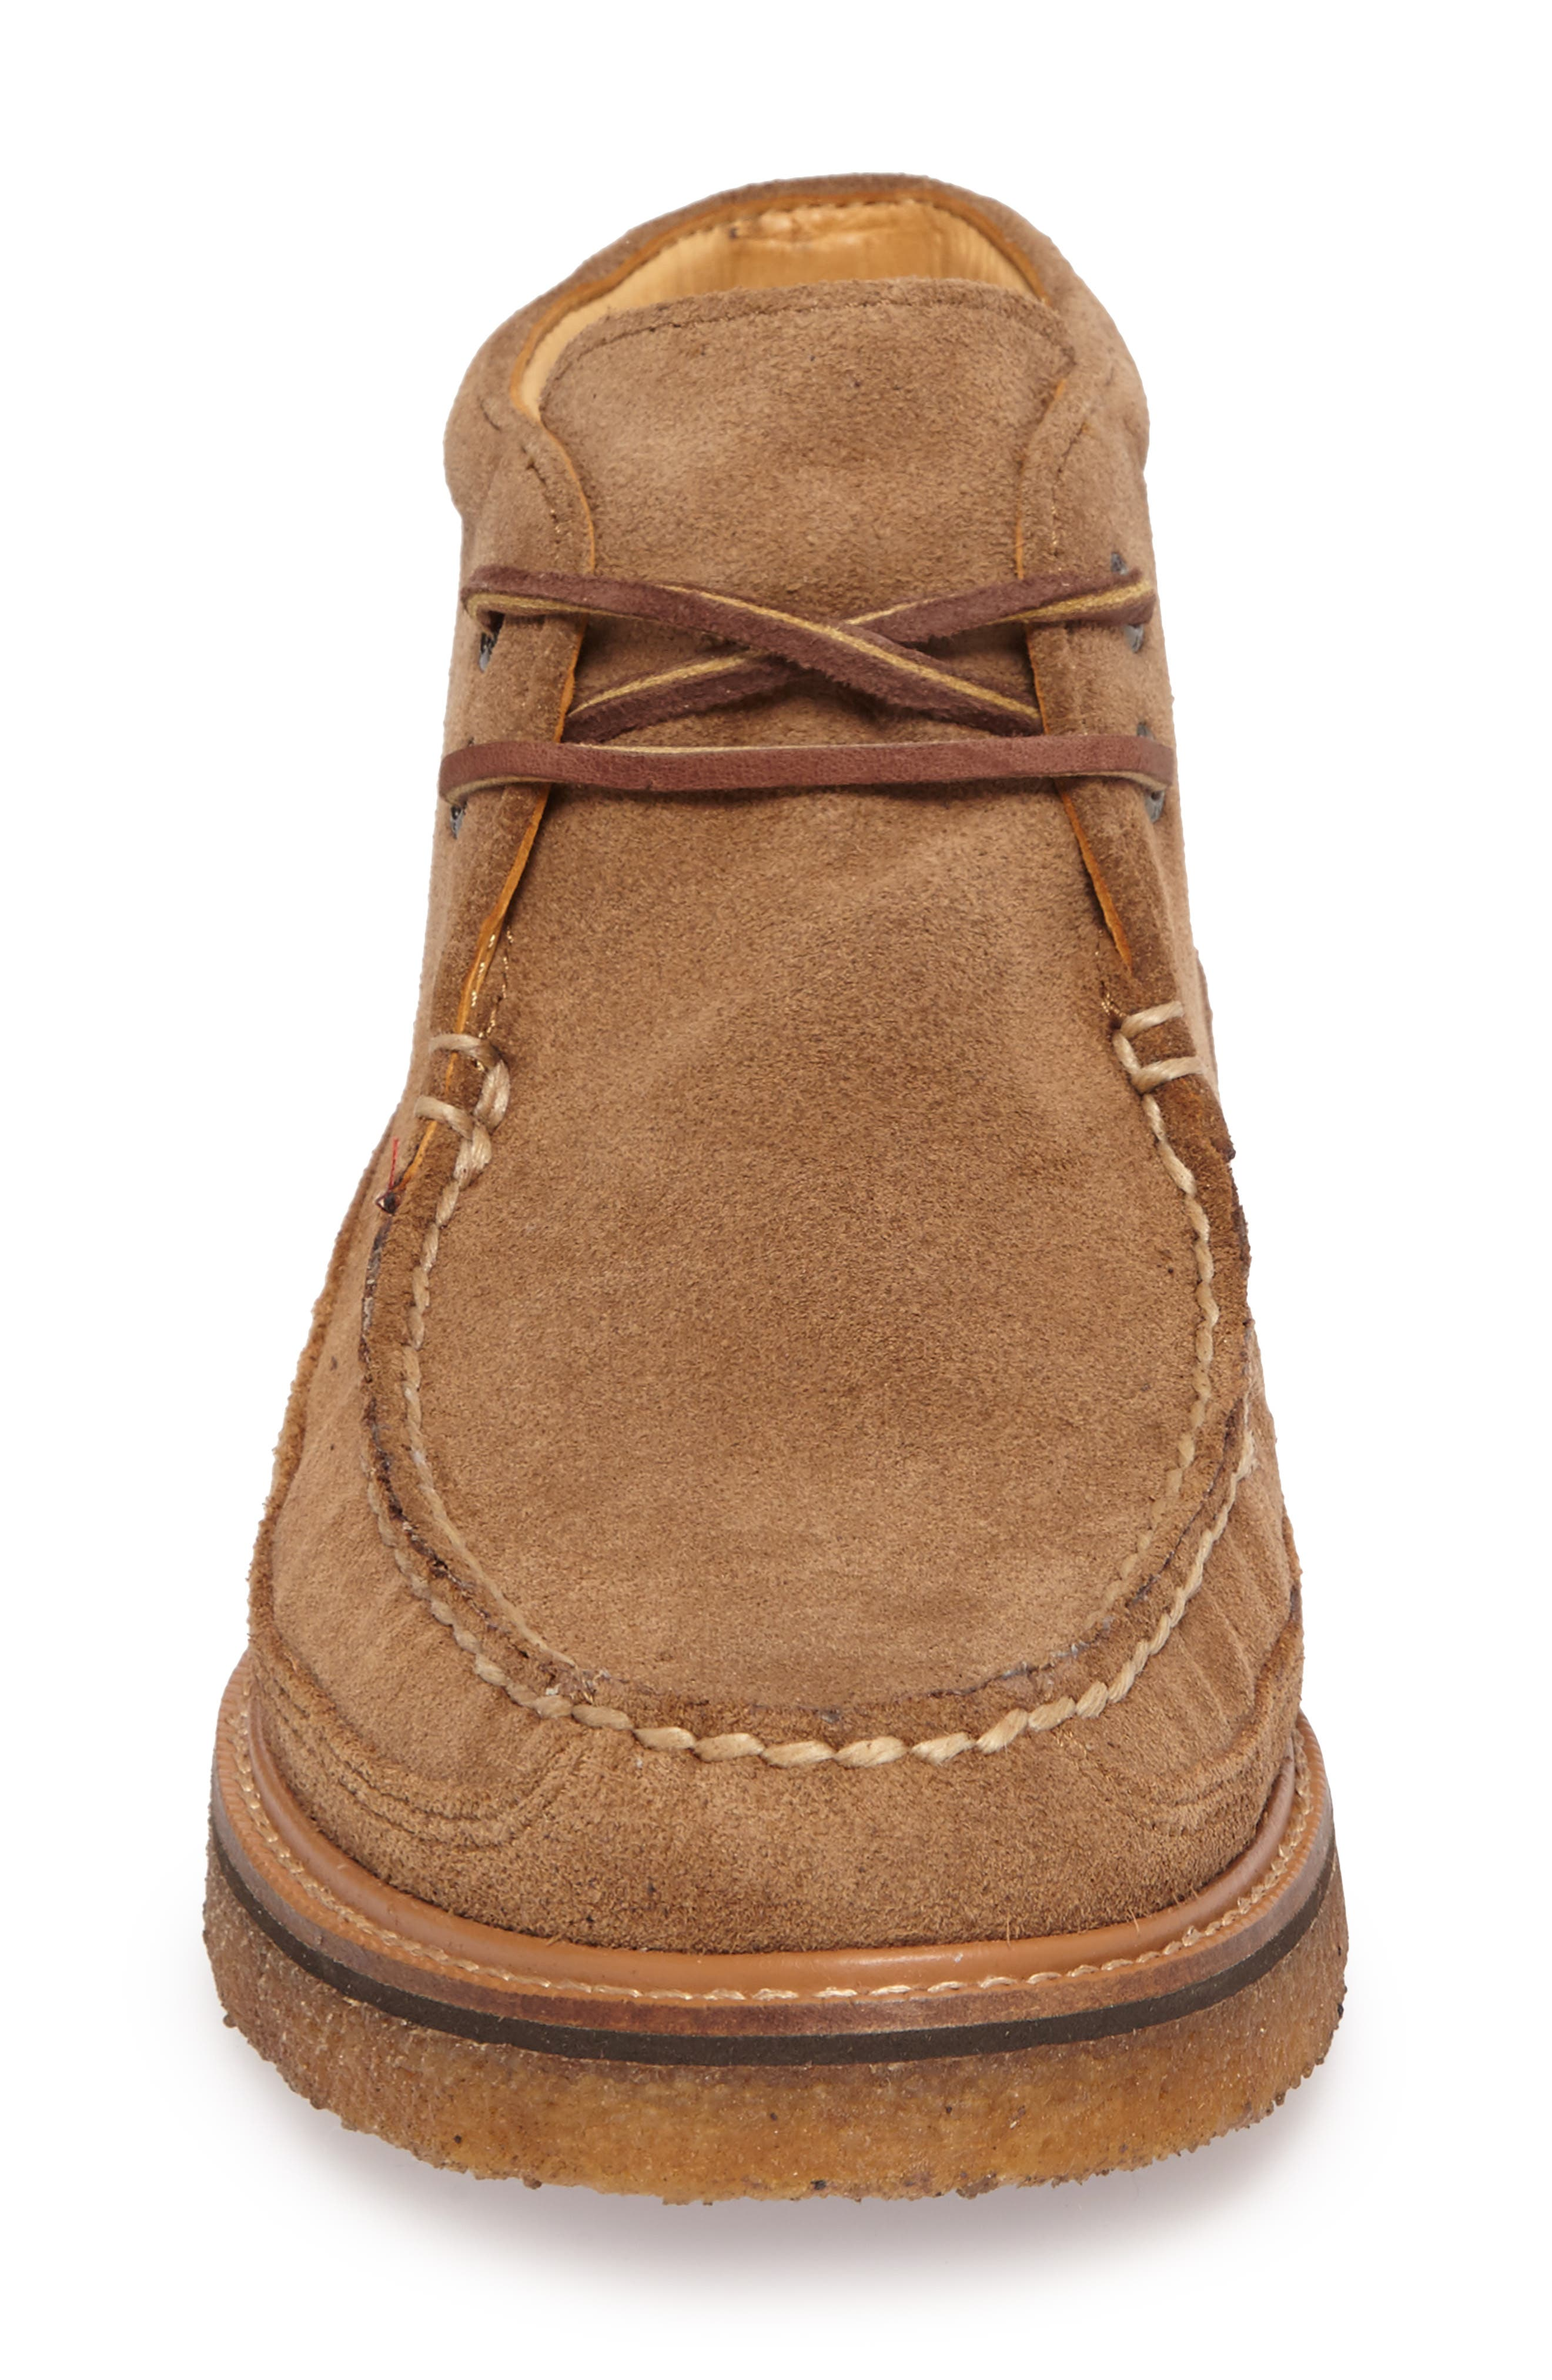 Gold Cup Chukka Boot,                             Alternate thumbnail 4, color,                             Caramel Suede